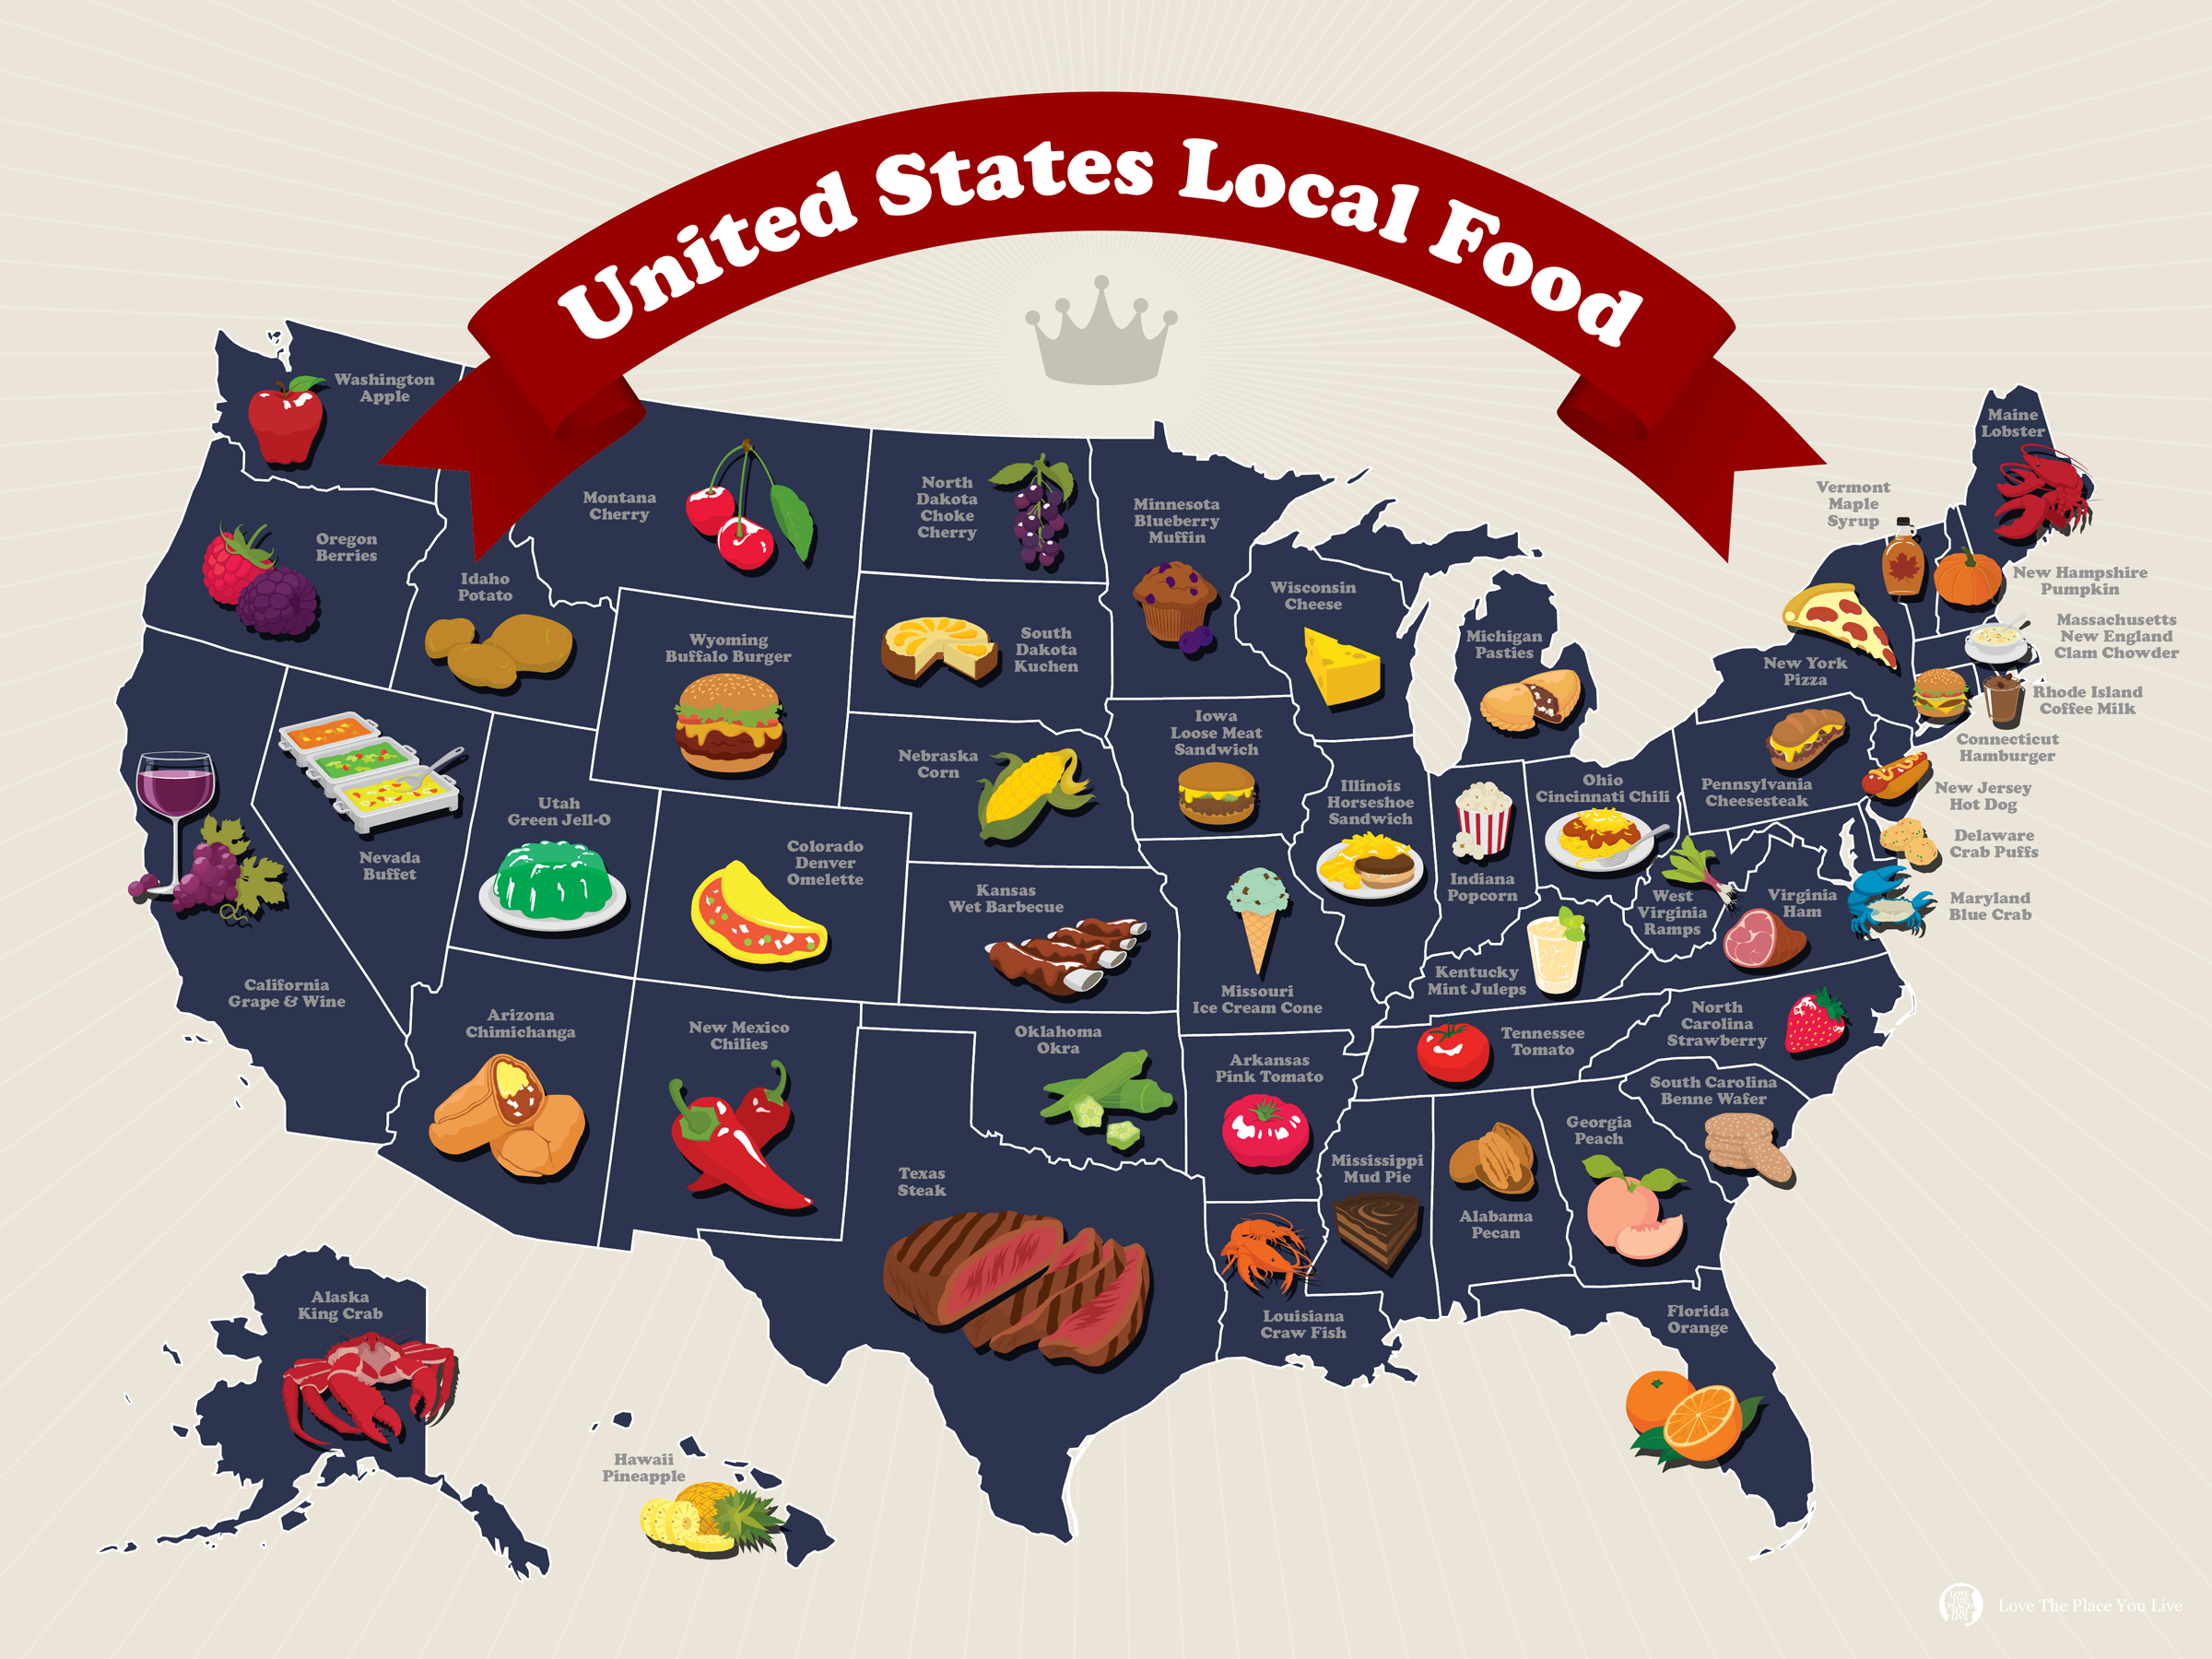 This United States Local Food Design Is One Of LTPYLs Projects - United state state map